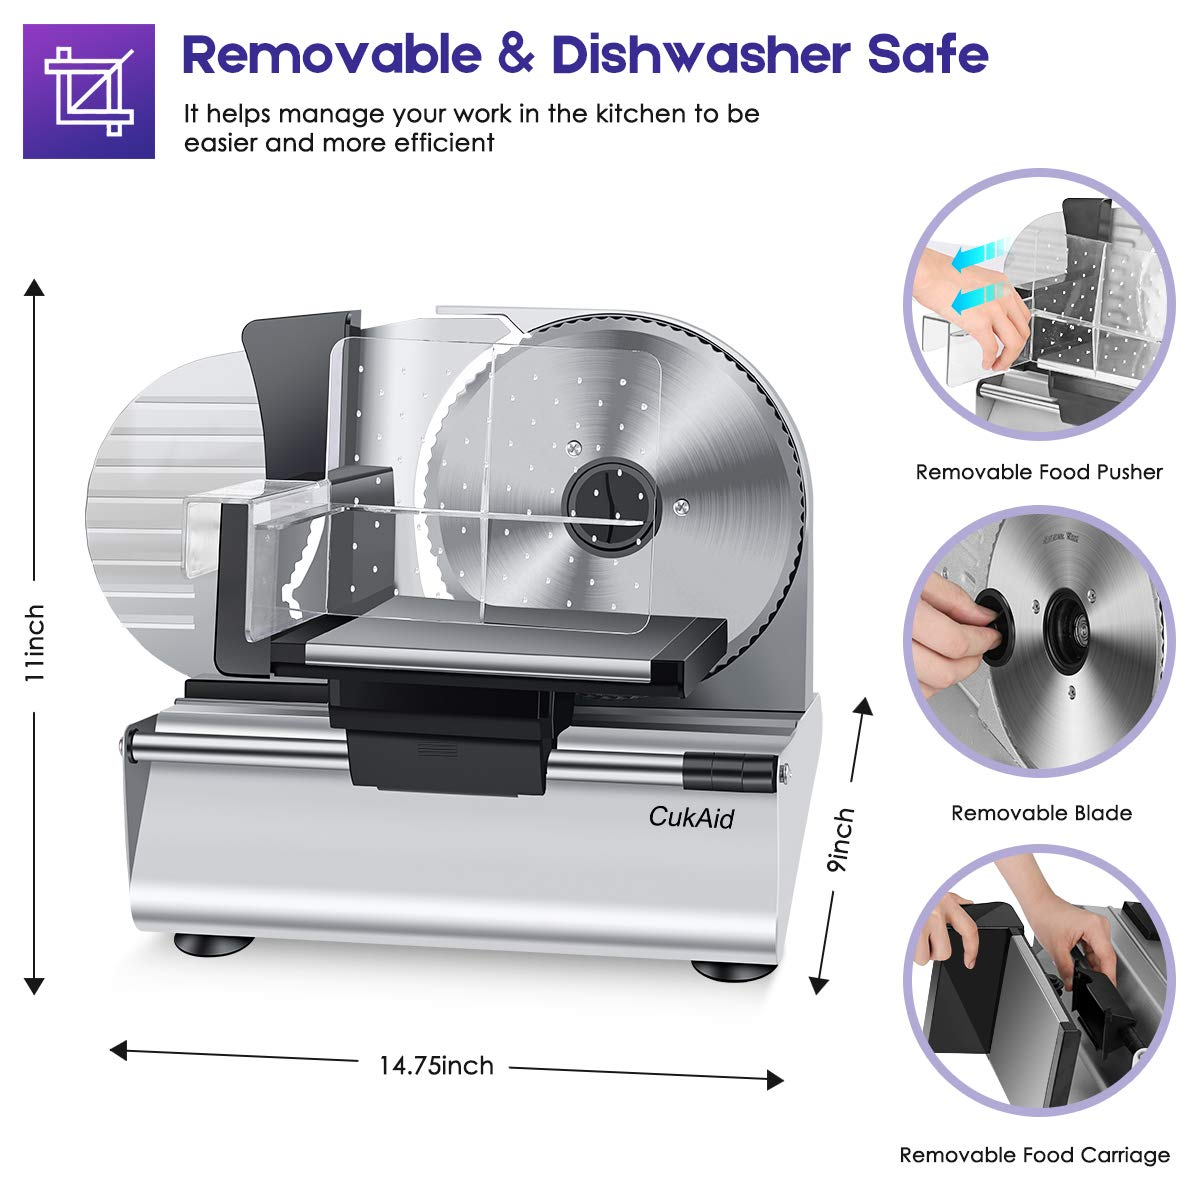 CukAid Electric Meat Slicer Machine, Deli Cheese Bread Food Slicer, Dishwasher Safe, Removable Stainless Steel Blade & Food Carriage and Pusher, 7/8 Inch Adjustable Thickness, 180W, Commercial & Home Use by CukAid (Image #2)